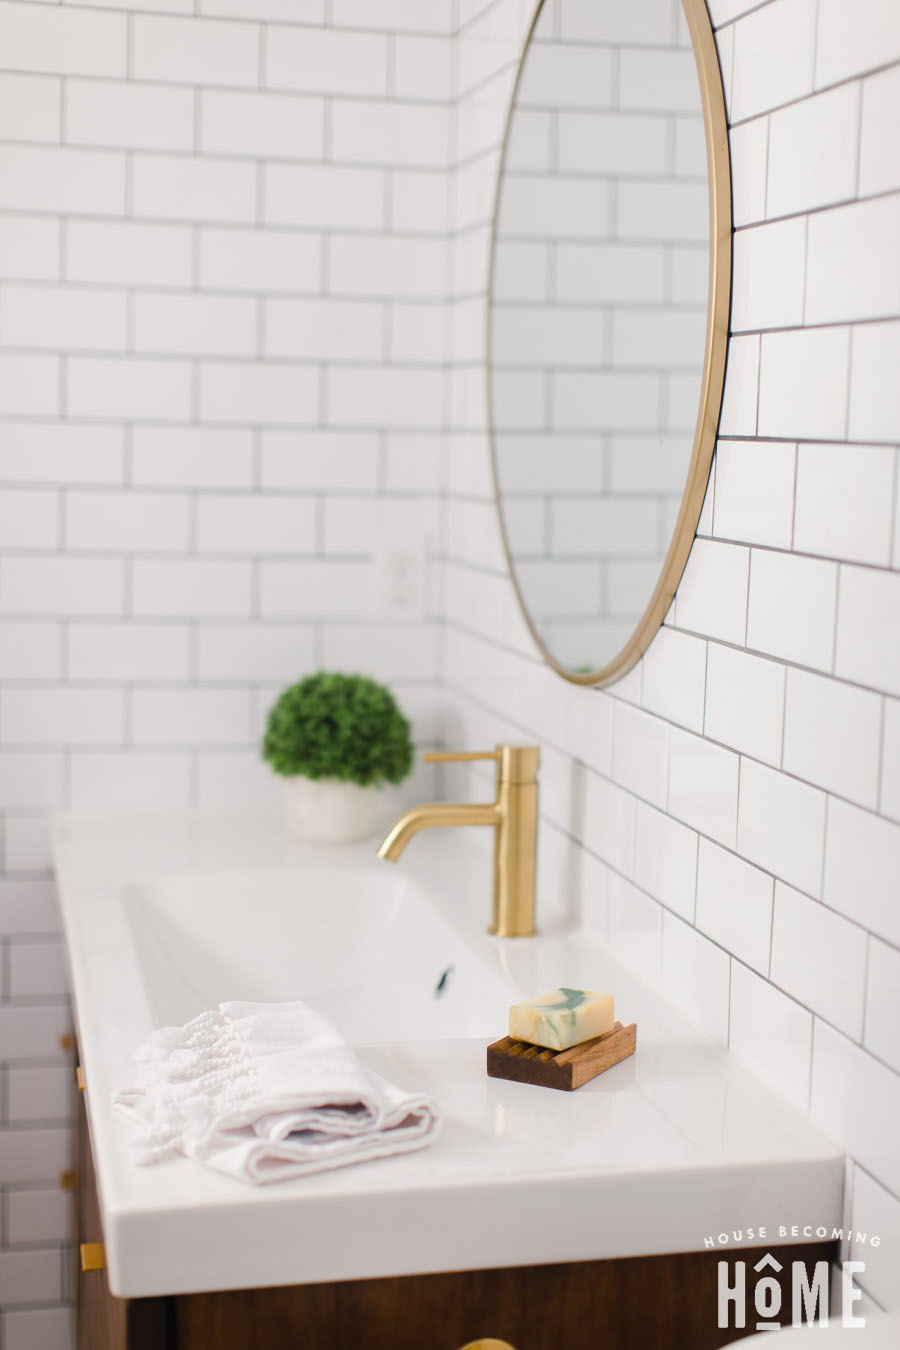 Small Bathroom Renovation After Shot on House Becoming Home : floating wood vanity, white subway tile, brass faucet and white countertop